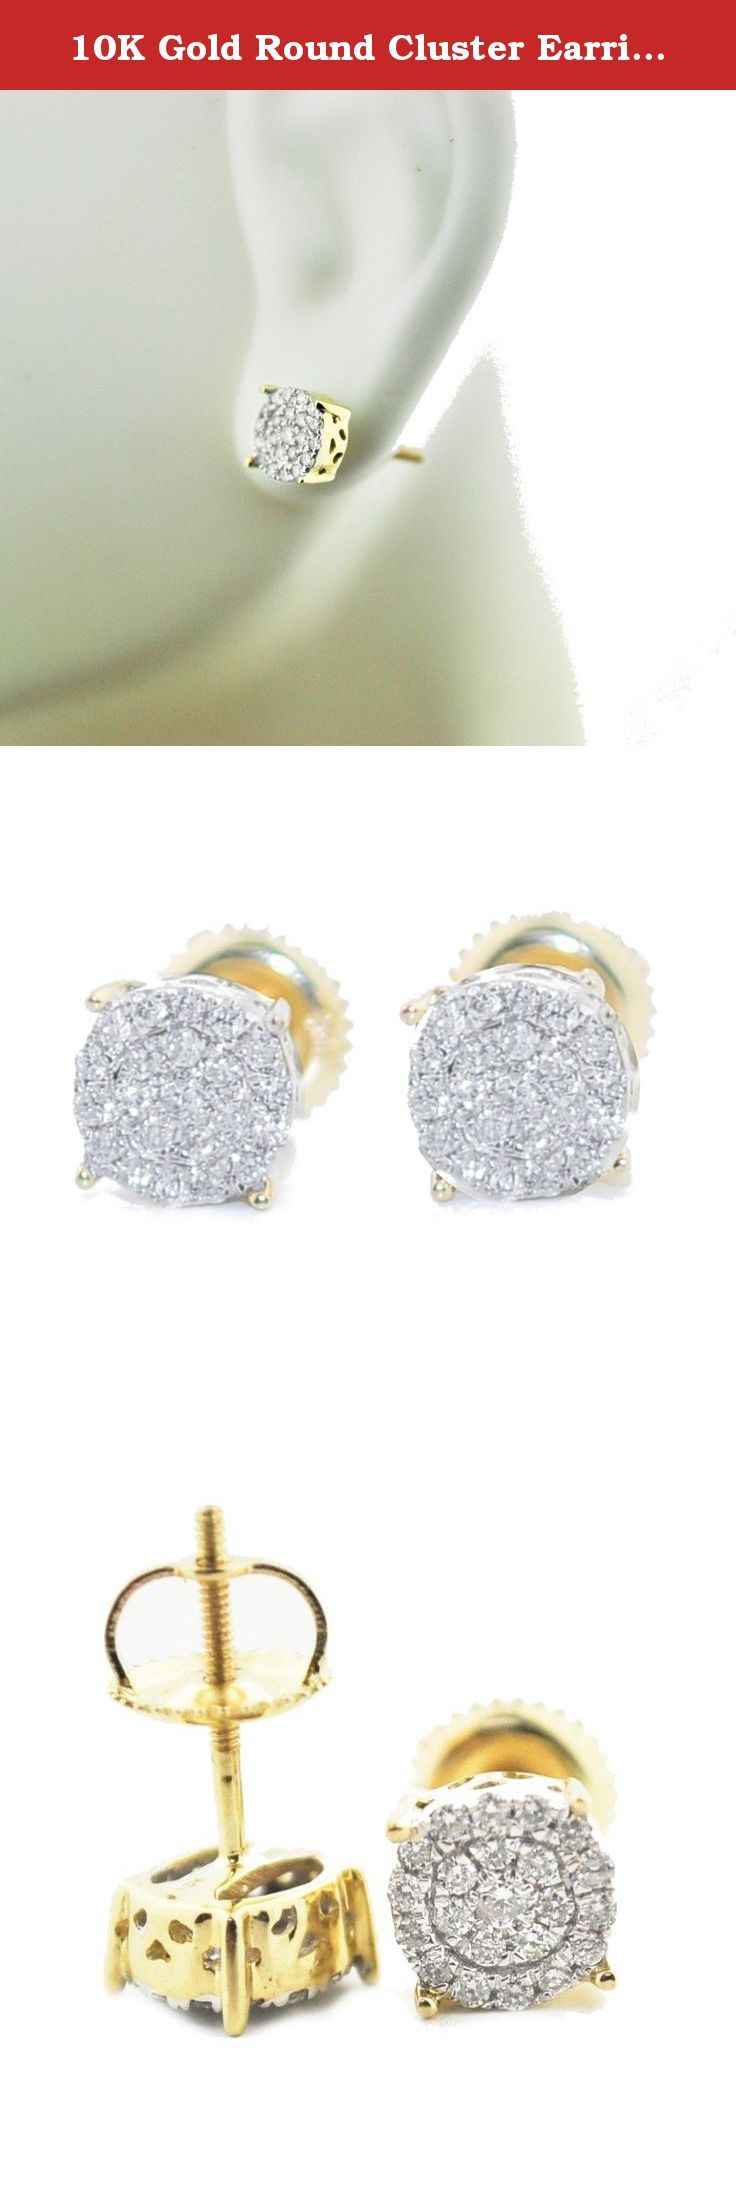 10K Gold Round Cluster Earrings 7mm Wide Screw Back 1/5cttw Diamonds. 10K Gold Round Cluster Earrings 7mm Wide Screw Back 1/5cttw Diamonds Item Type: stud-earrings Metal Type: 10k yellow gold Gem Type: White-diamond for Men Stylish pave set diamond stud earrings with screw back real gold and real diamond earrings collection by IdealCutGems images are enlarged to show product details, all measurements are approximate values, 90 days warranty on all items a4.